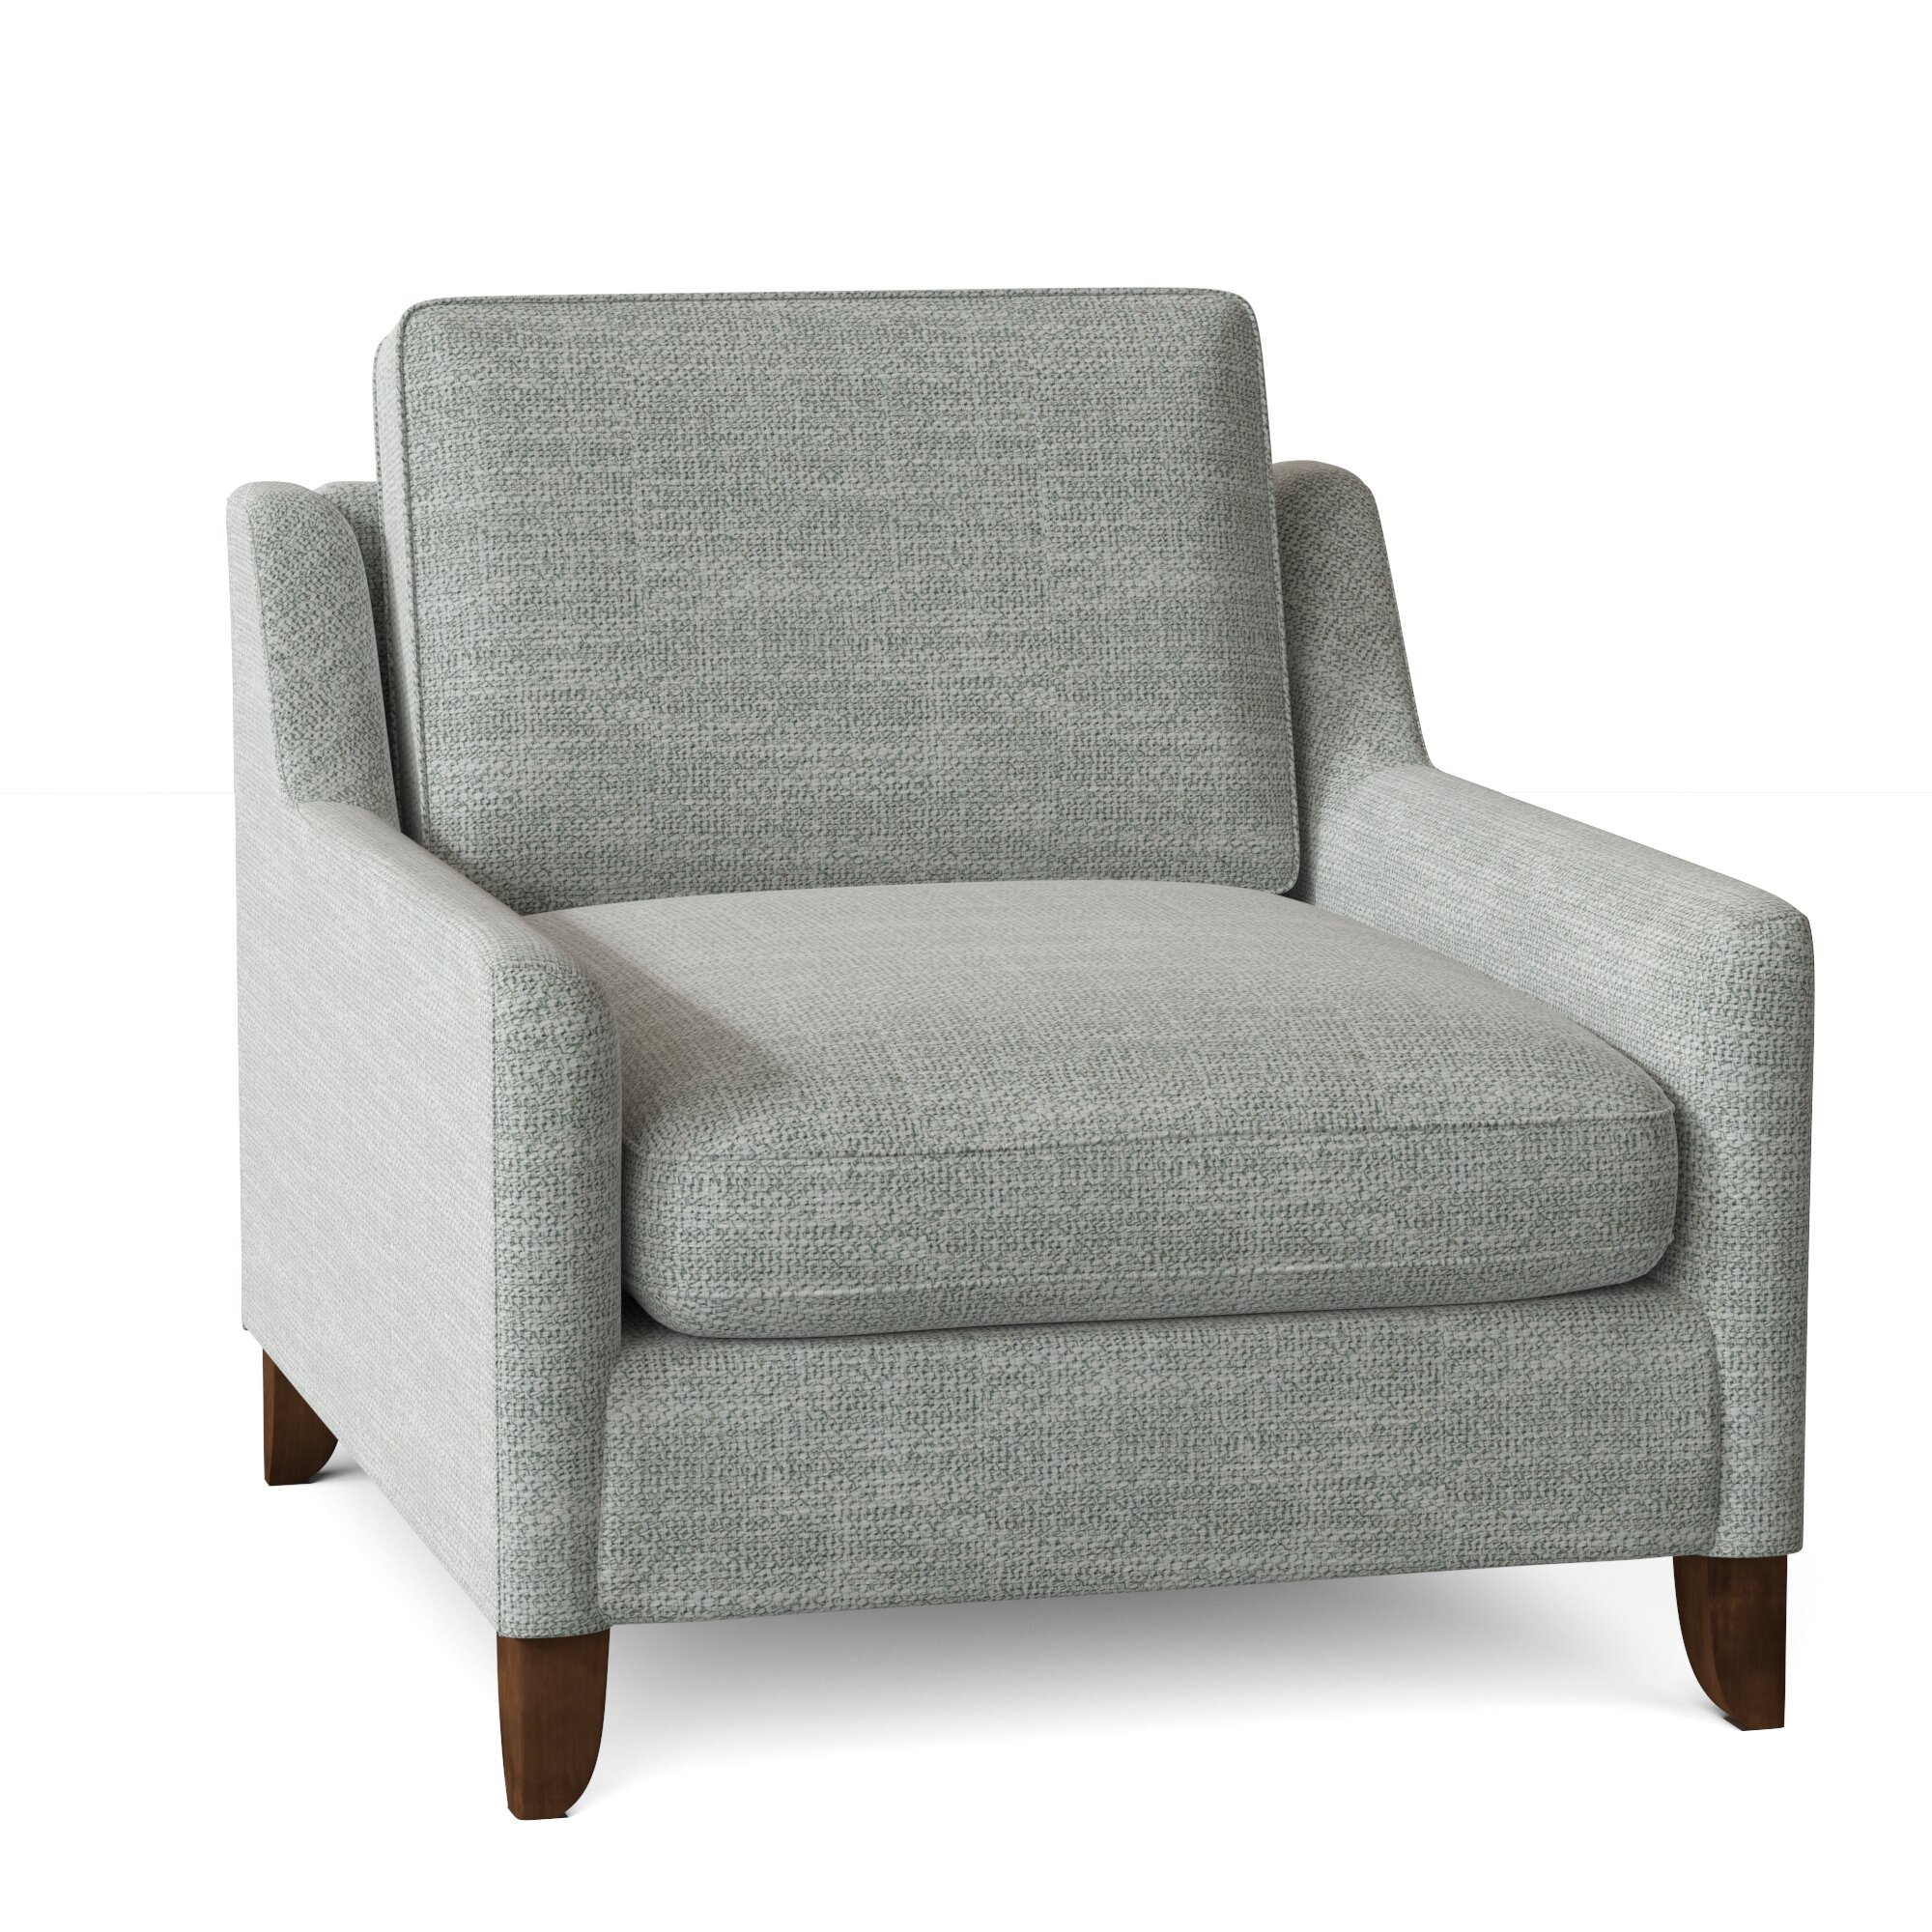 Grey Silver Accent Chairs You'Ll Love In 2021 | Wayfair Throughout Brookhhurst Avina Armchairs (View 9 of 15)